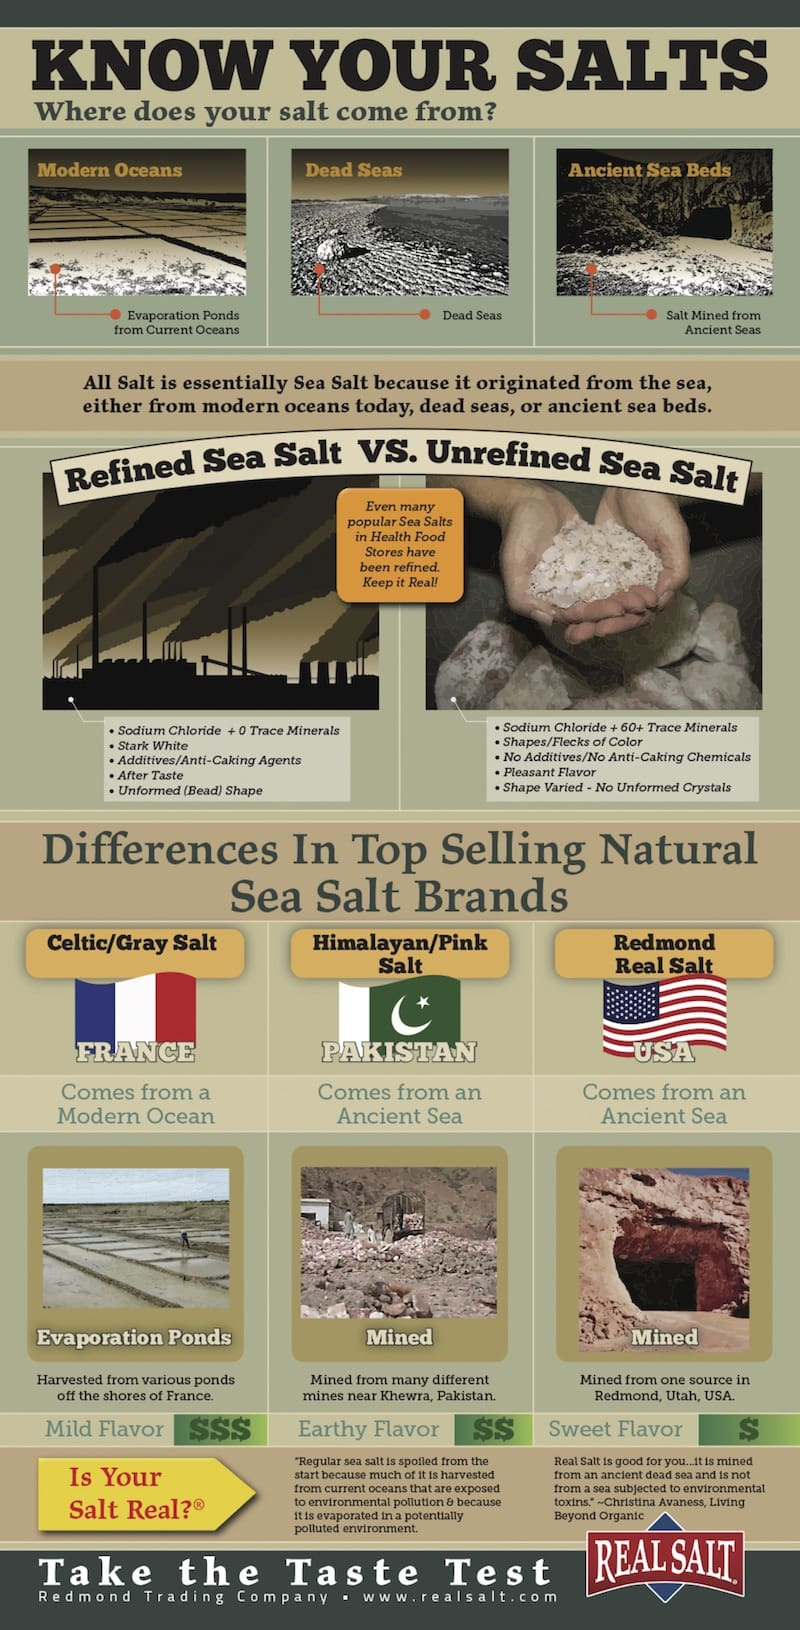 Know Your Salts infographic